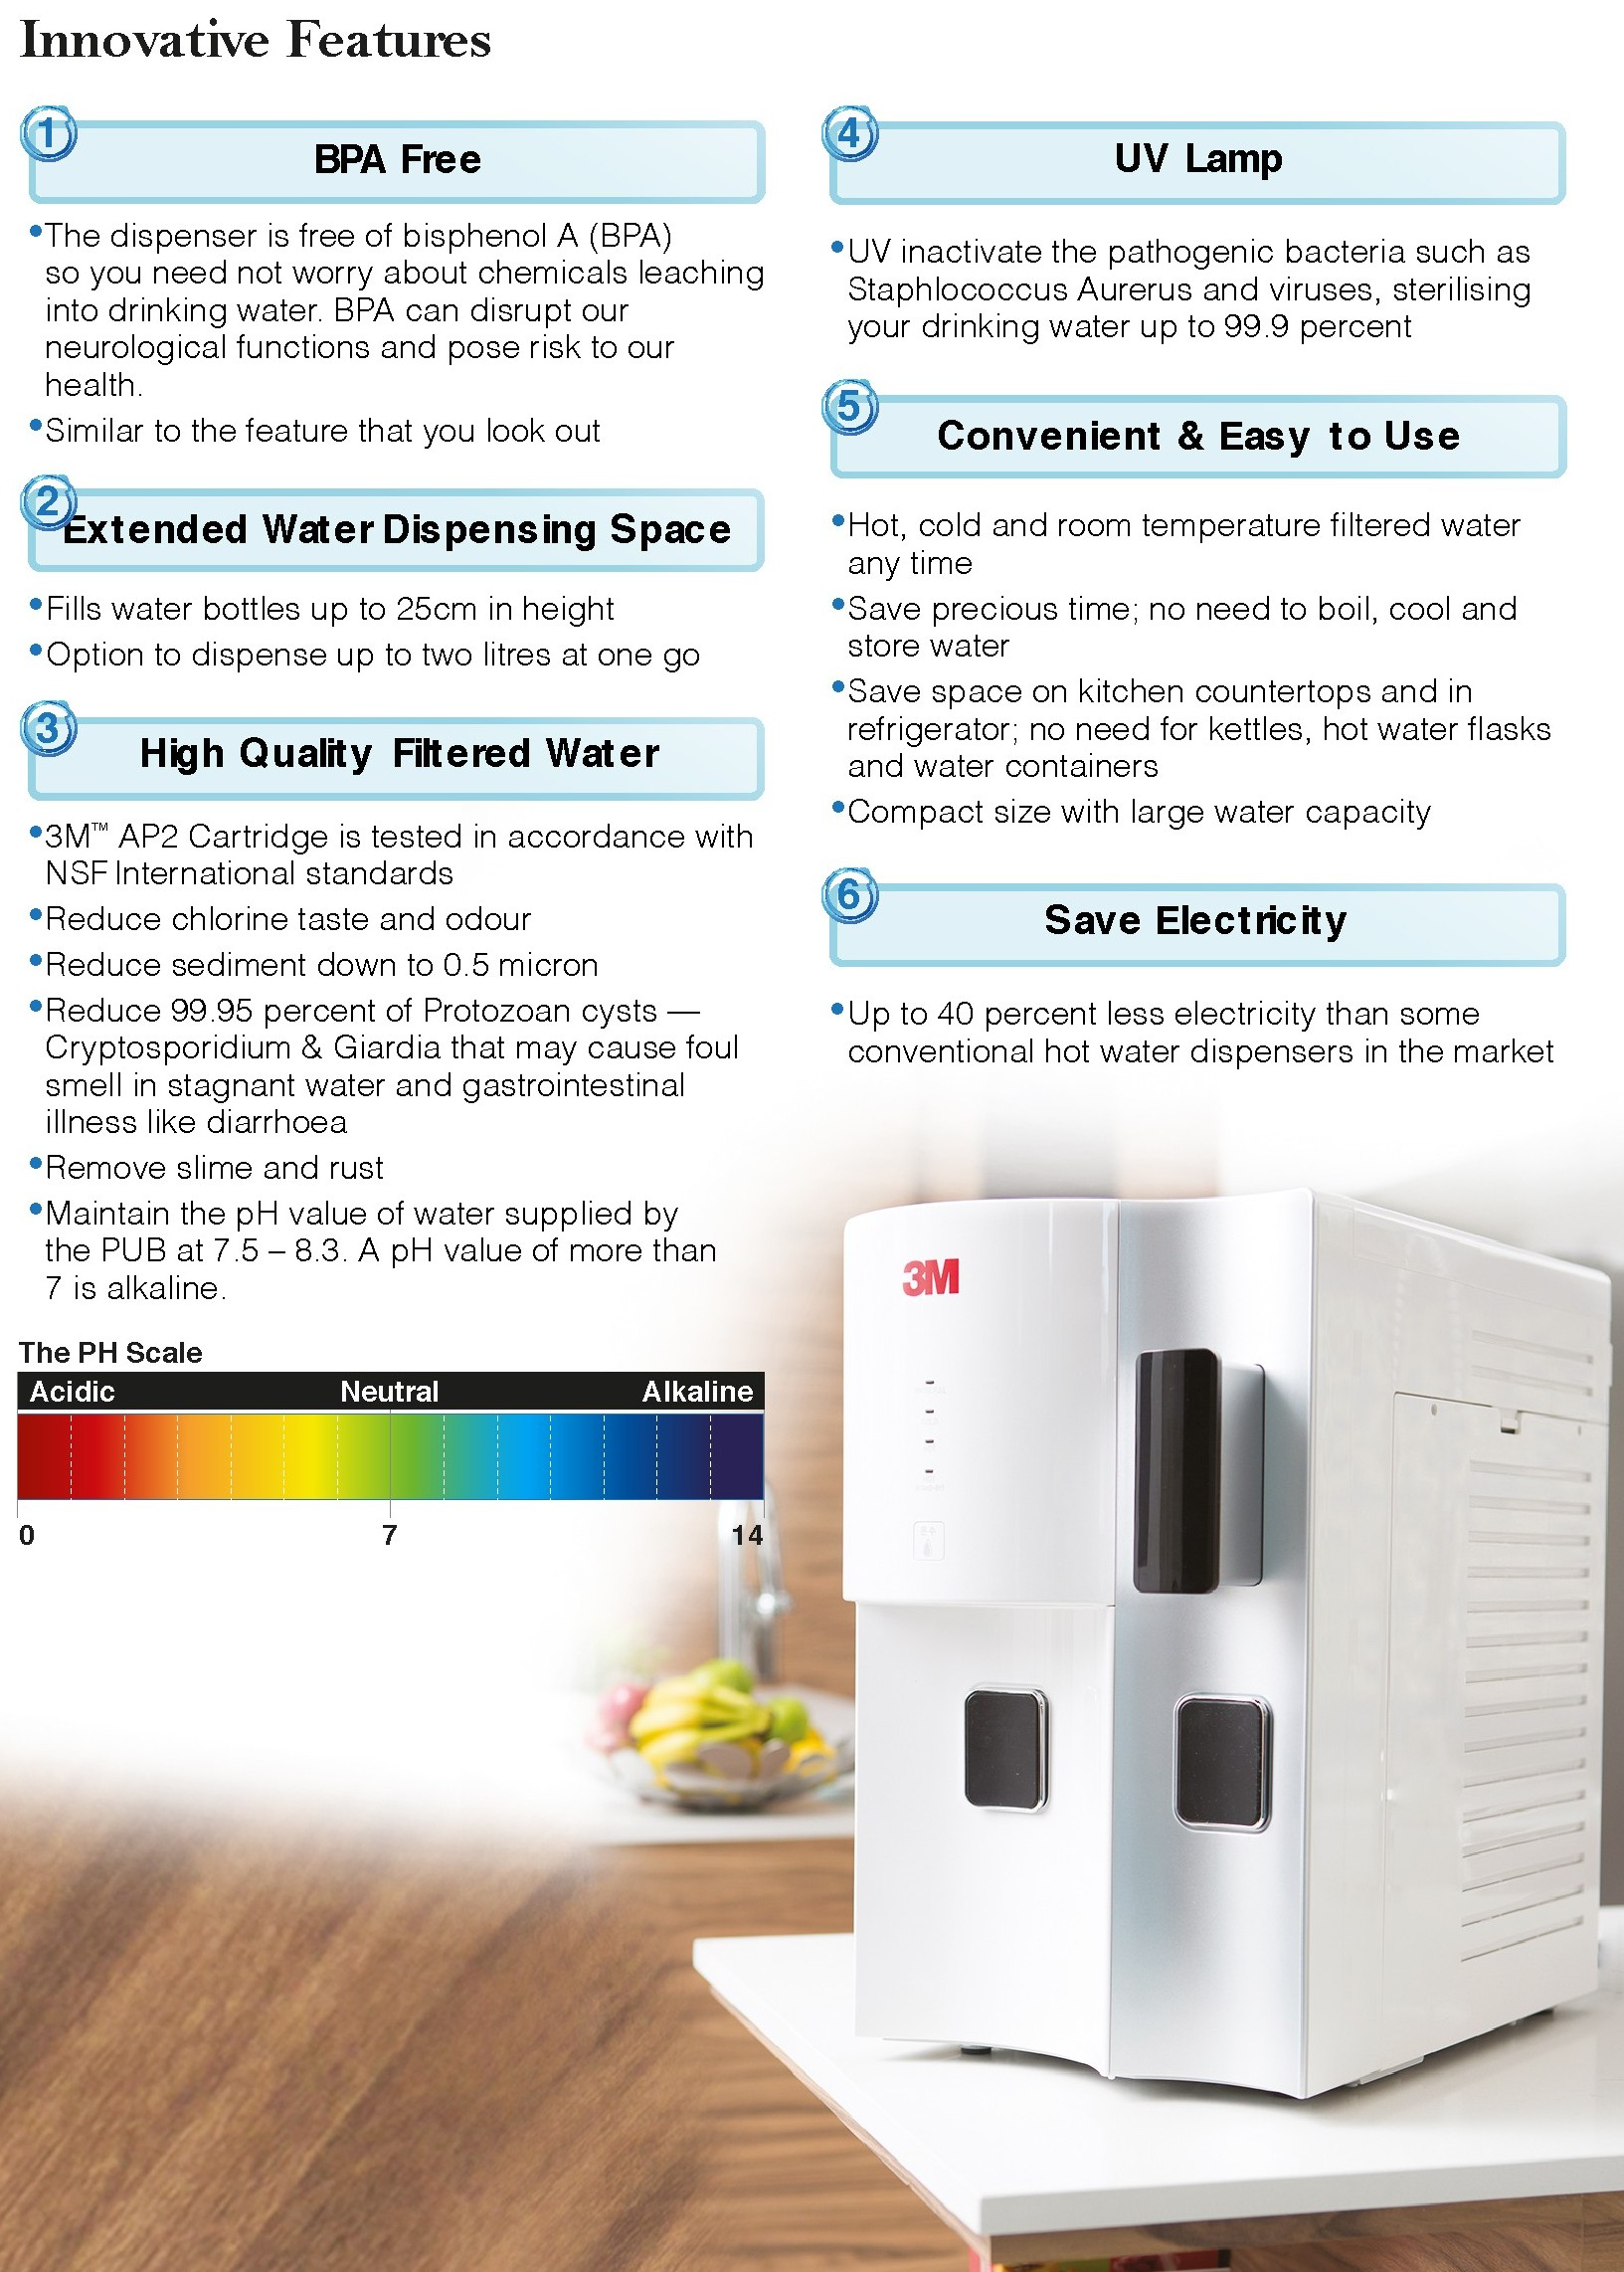 3M-water-dispenser-HDC-2-innovative-features